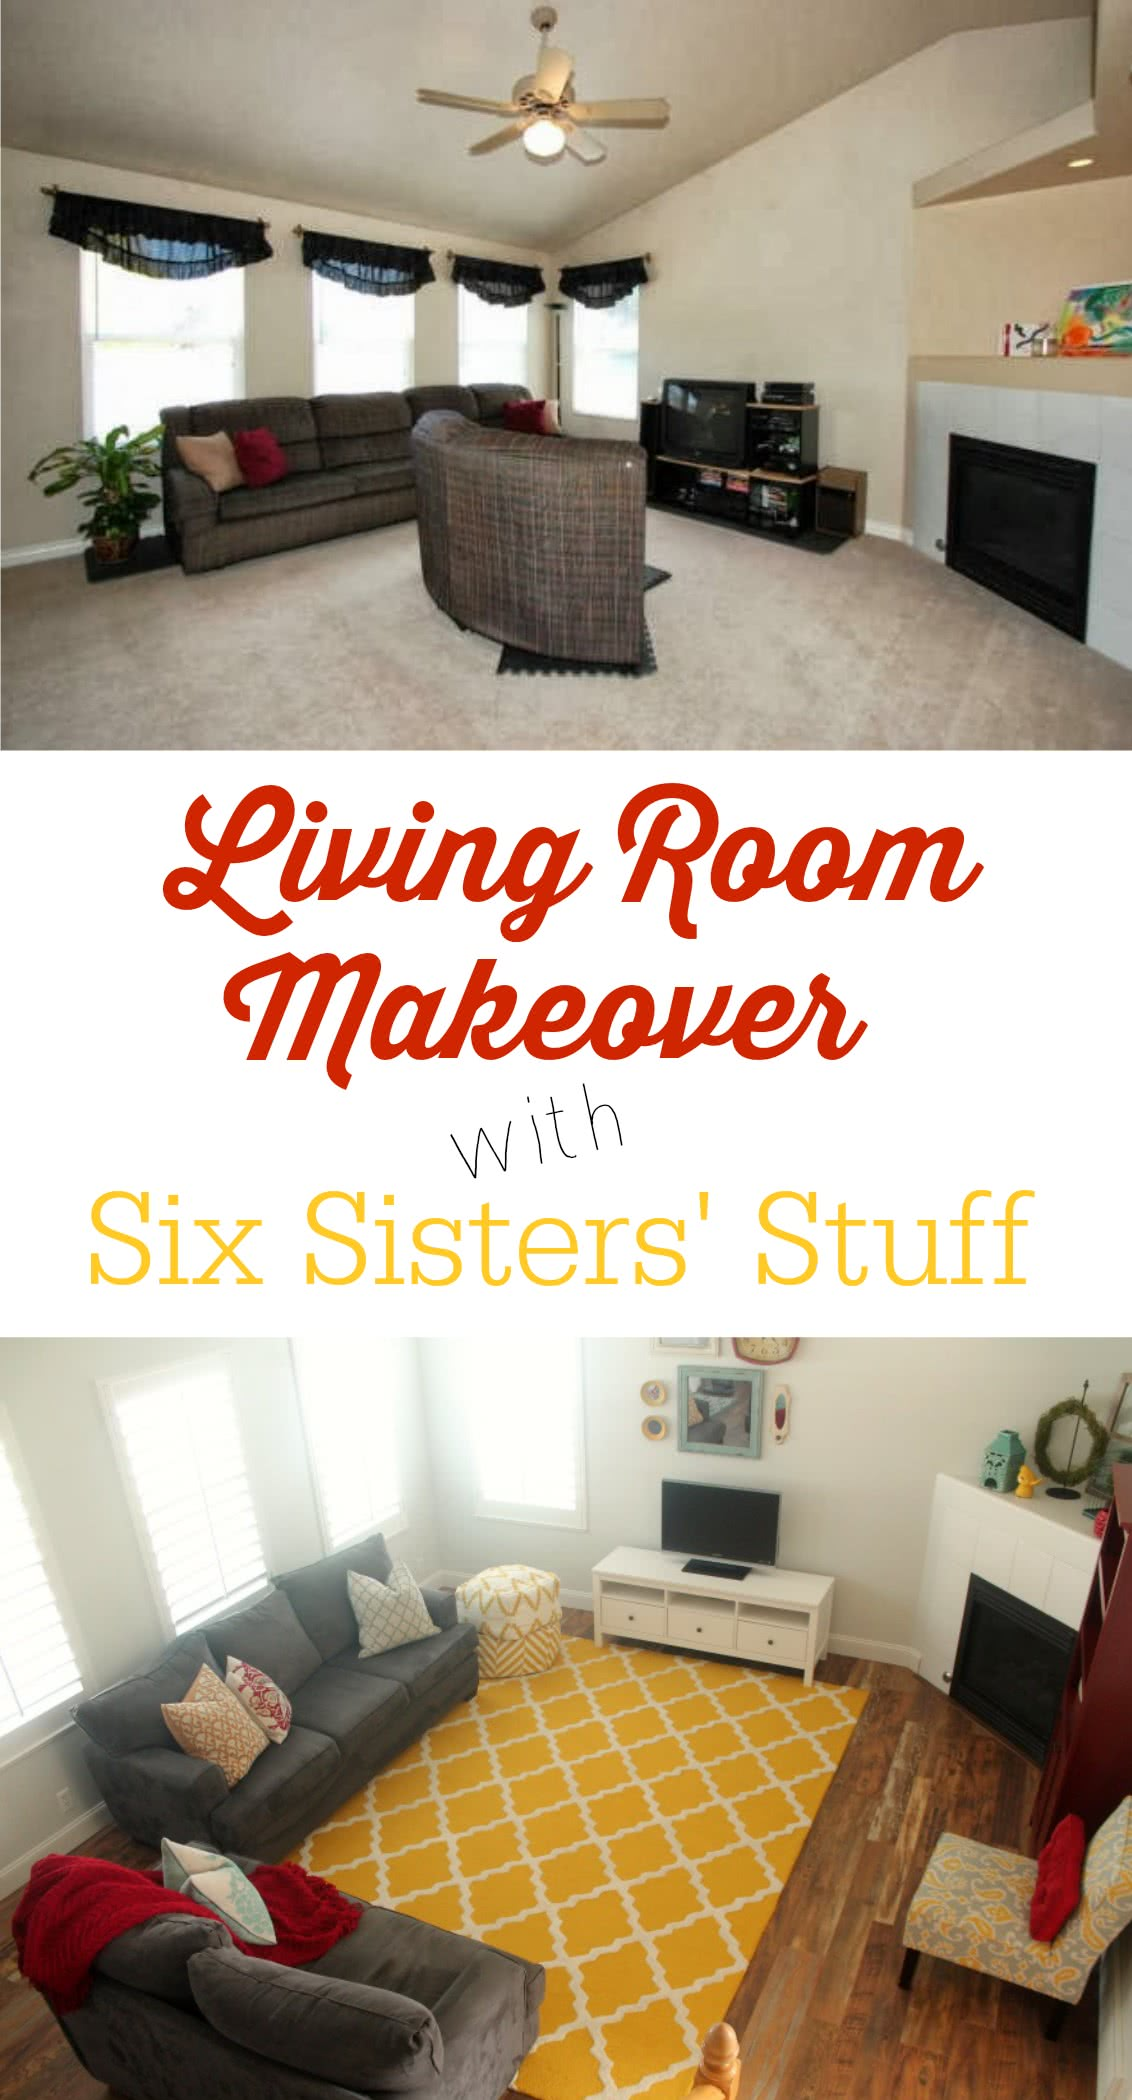 Six Sisters' Stuff Living Room Makeover